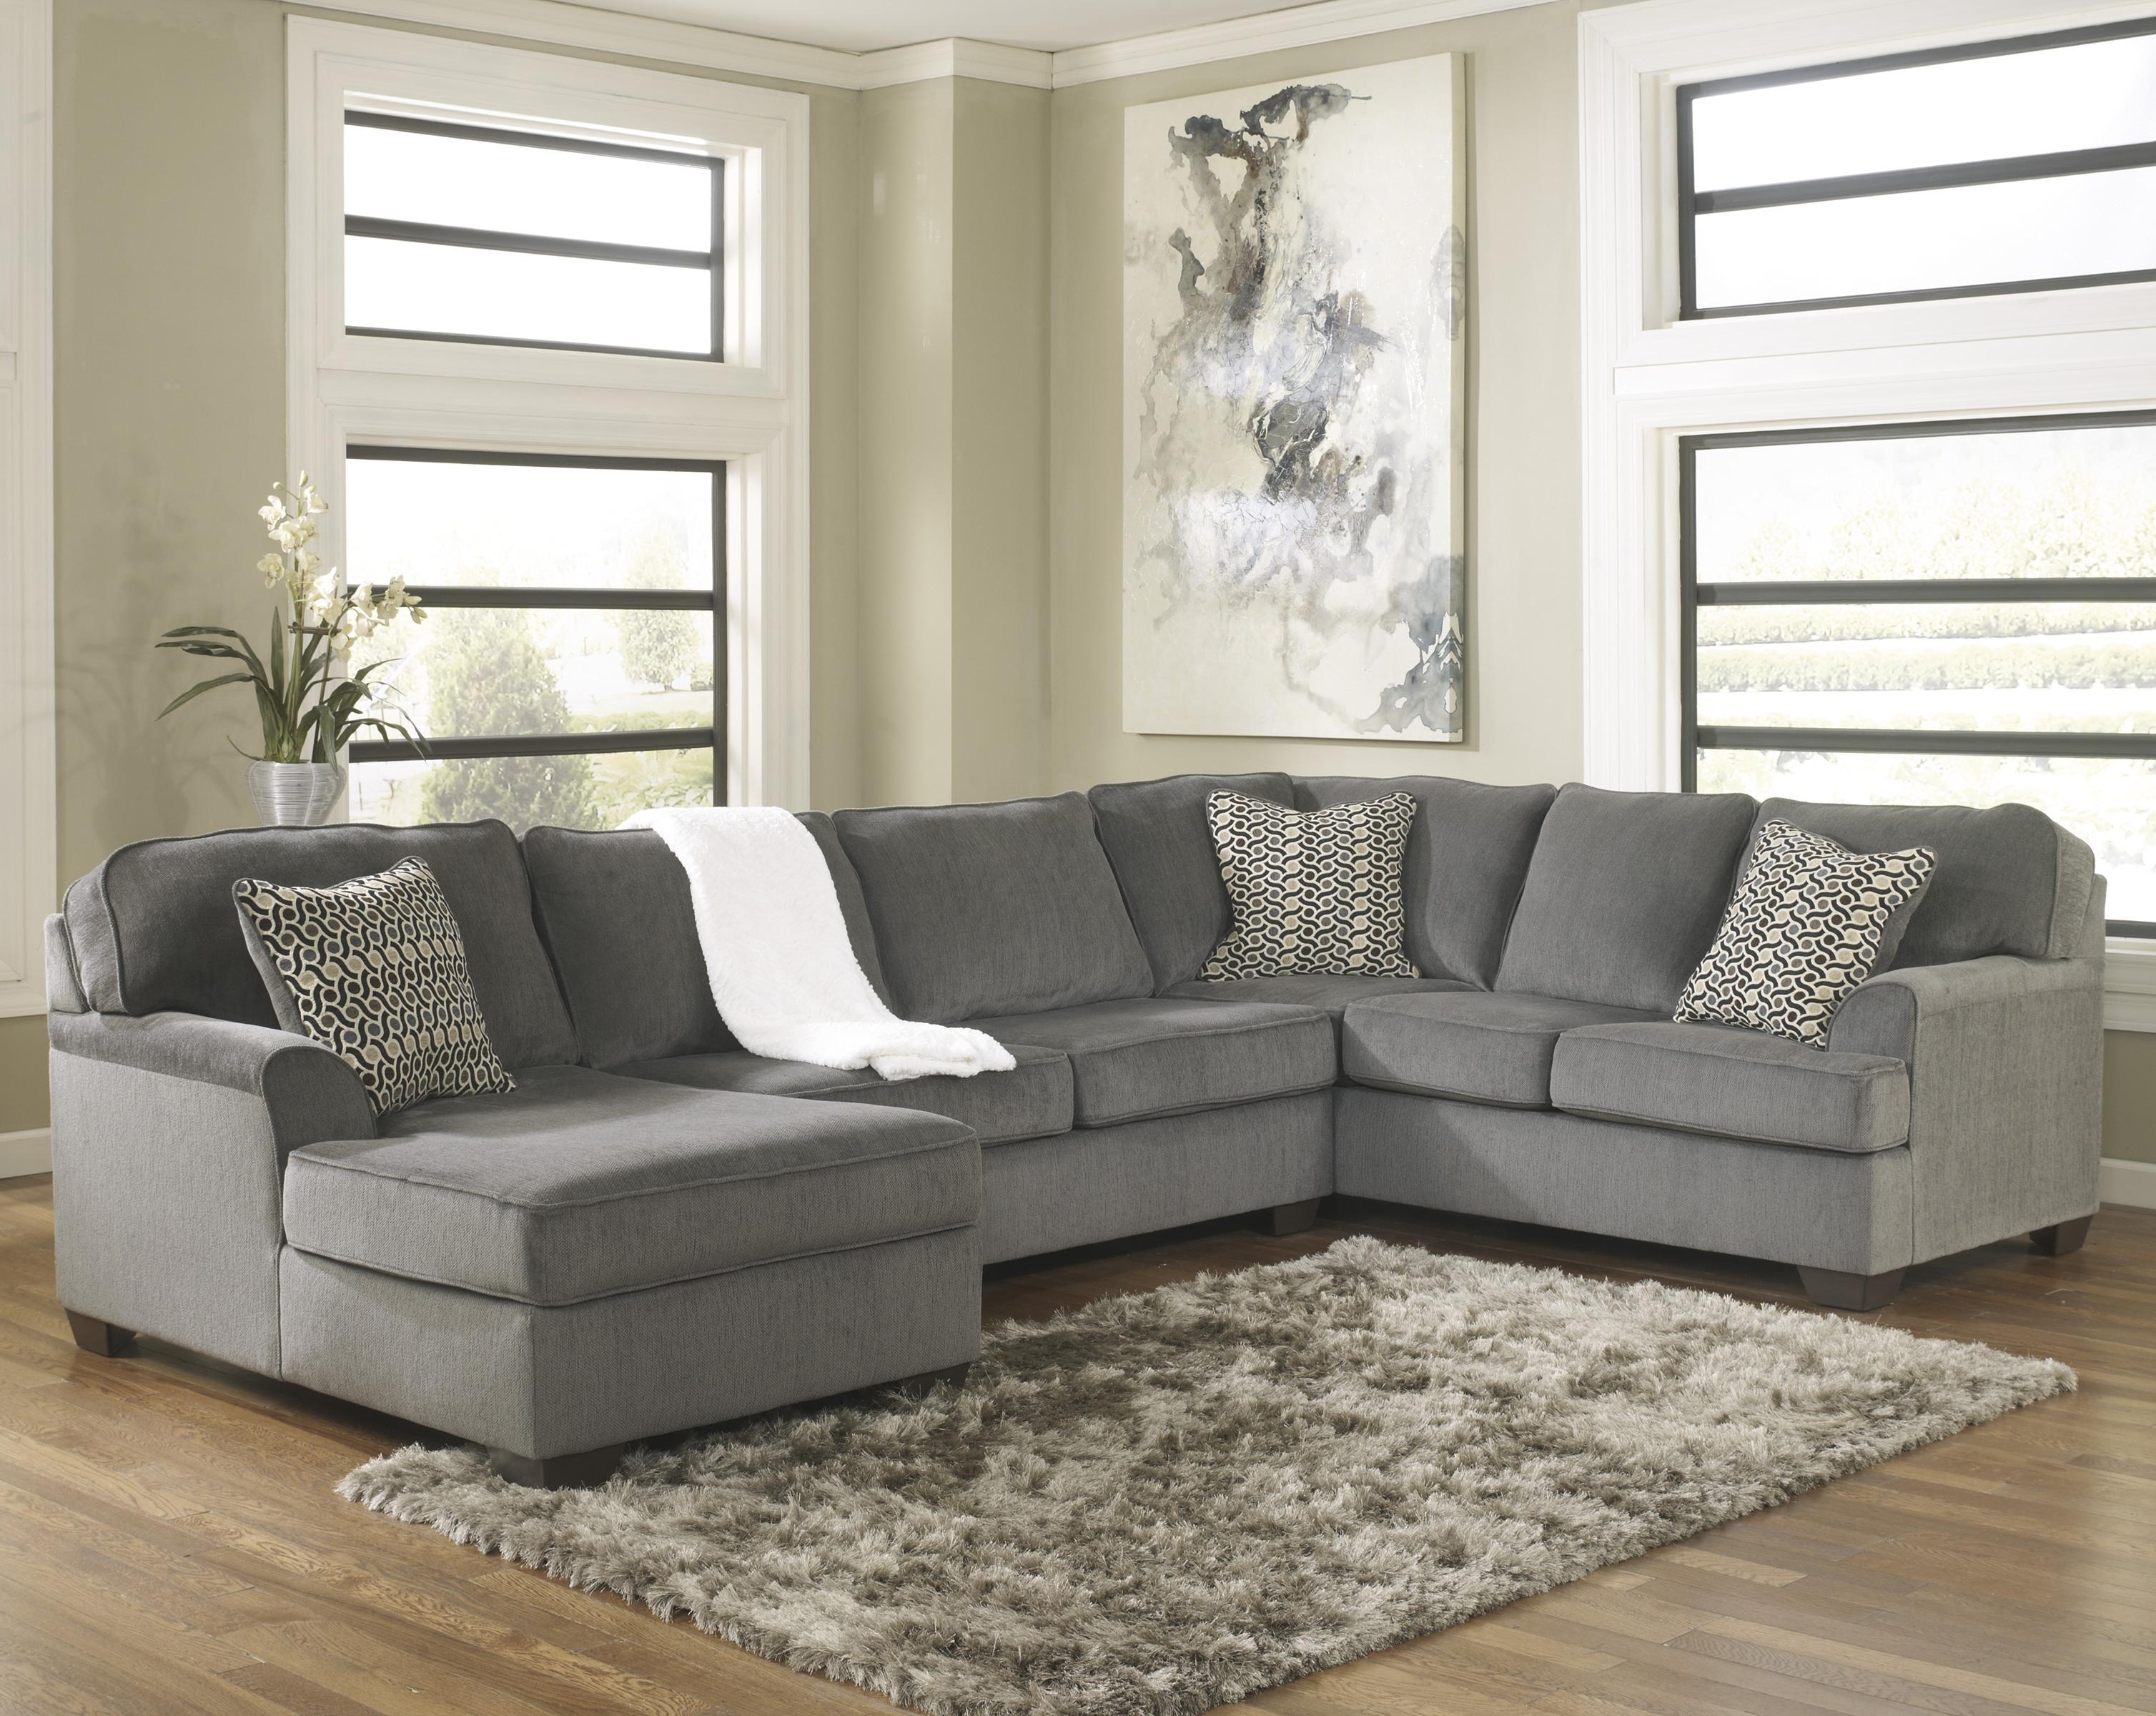 Ashley Furniture Loric – Smoke Contemporary 3 Piece Sectional With Regarding Well Liked 3 Piece Sectionals With Chaise (View 15 of 15)